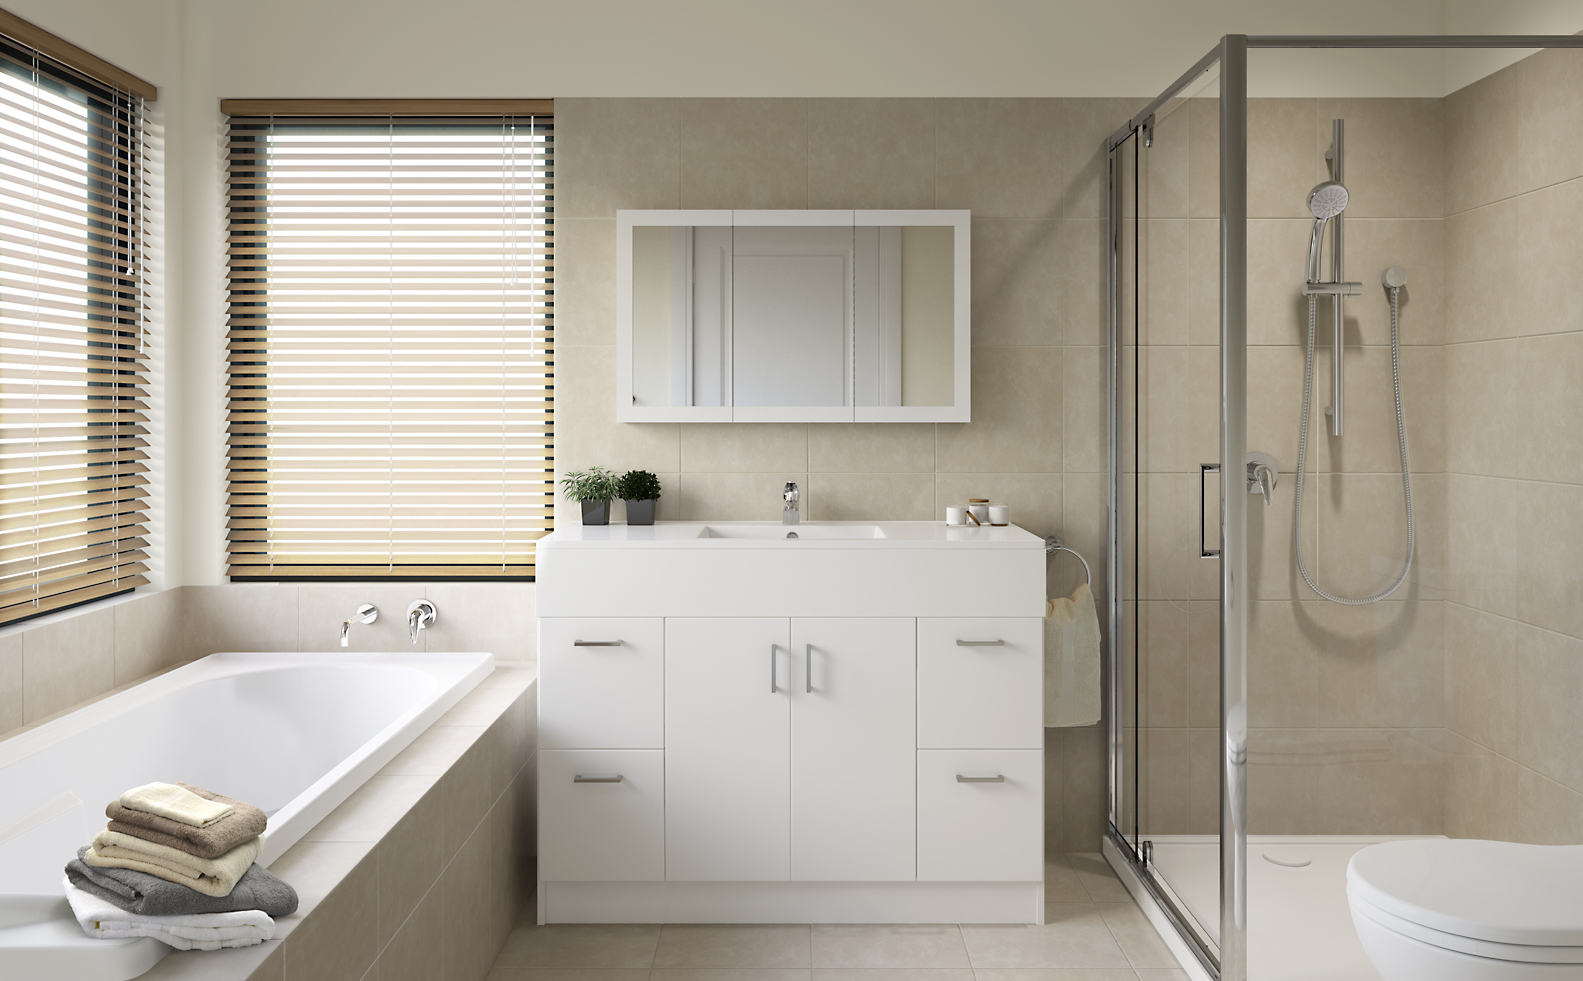 Interior Bathroom Inspiration bathroom inspiration gallery bunnings warehouse